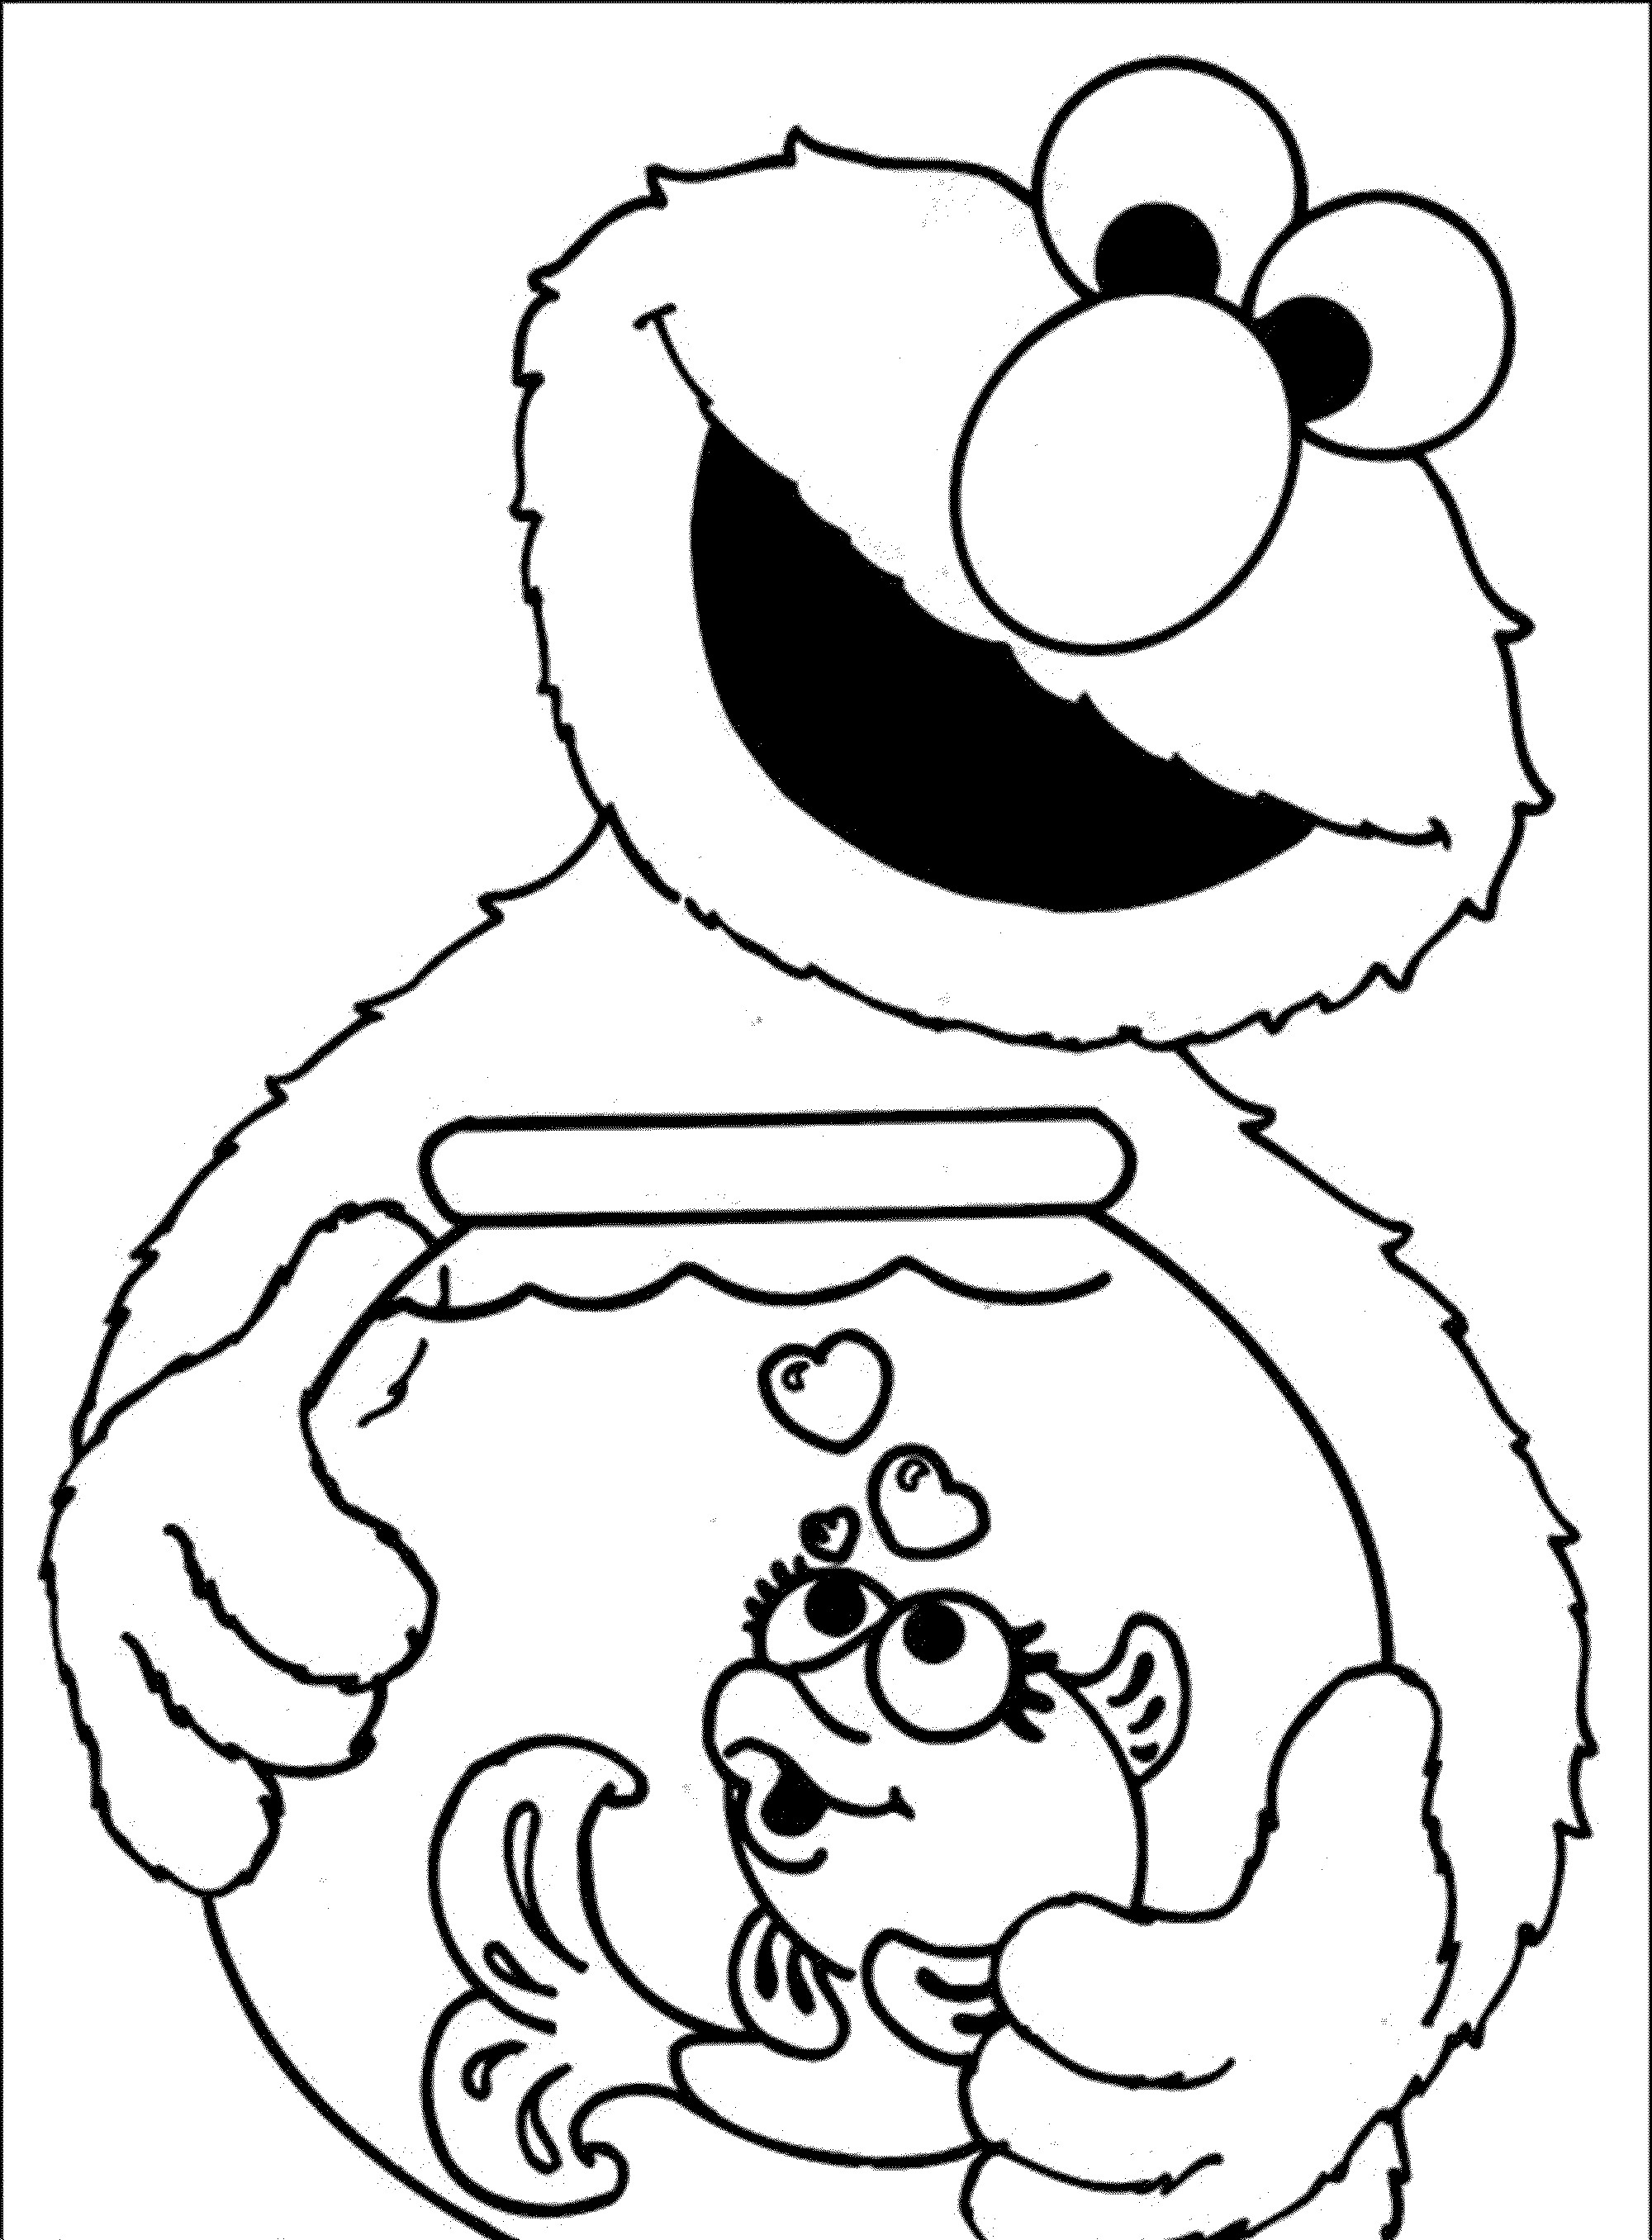 Free Elmo Printable Coloring Pages Download | Free ...